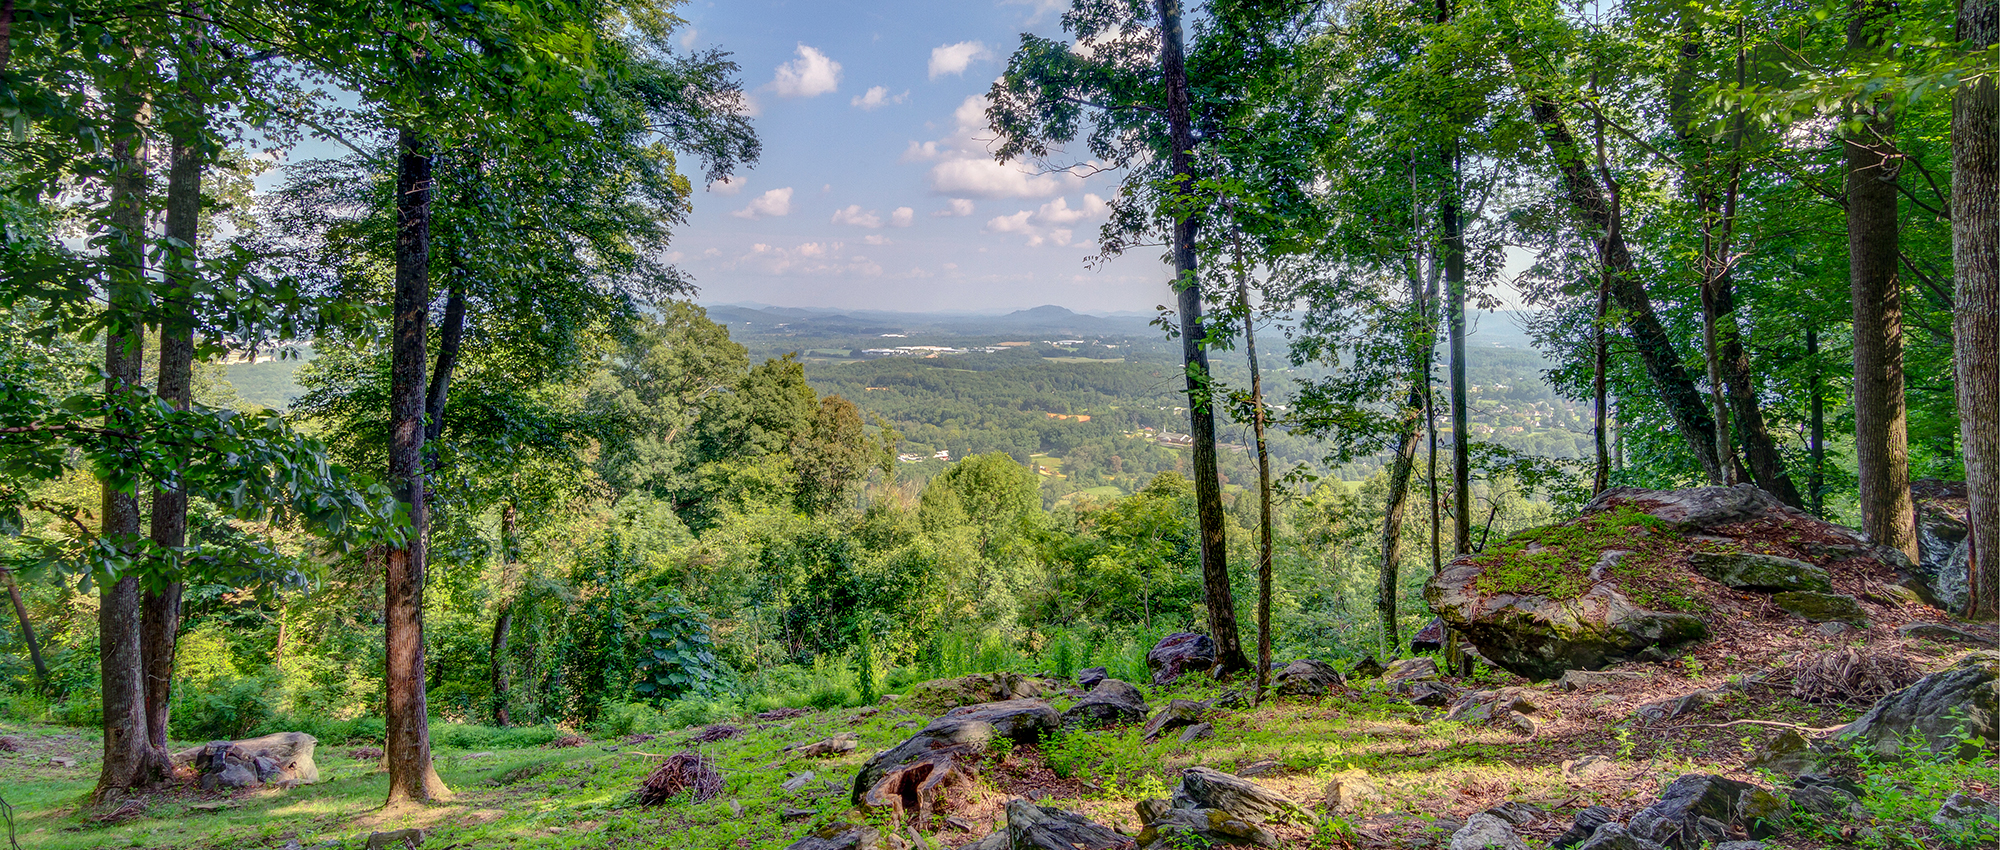 Southridge View | The Cliffs at Walnut Cove